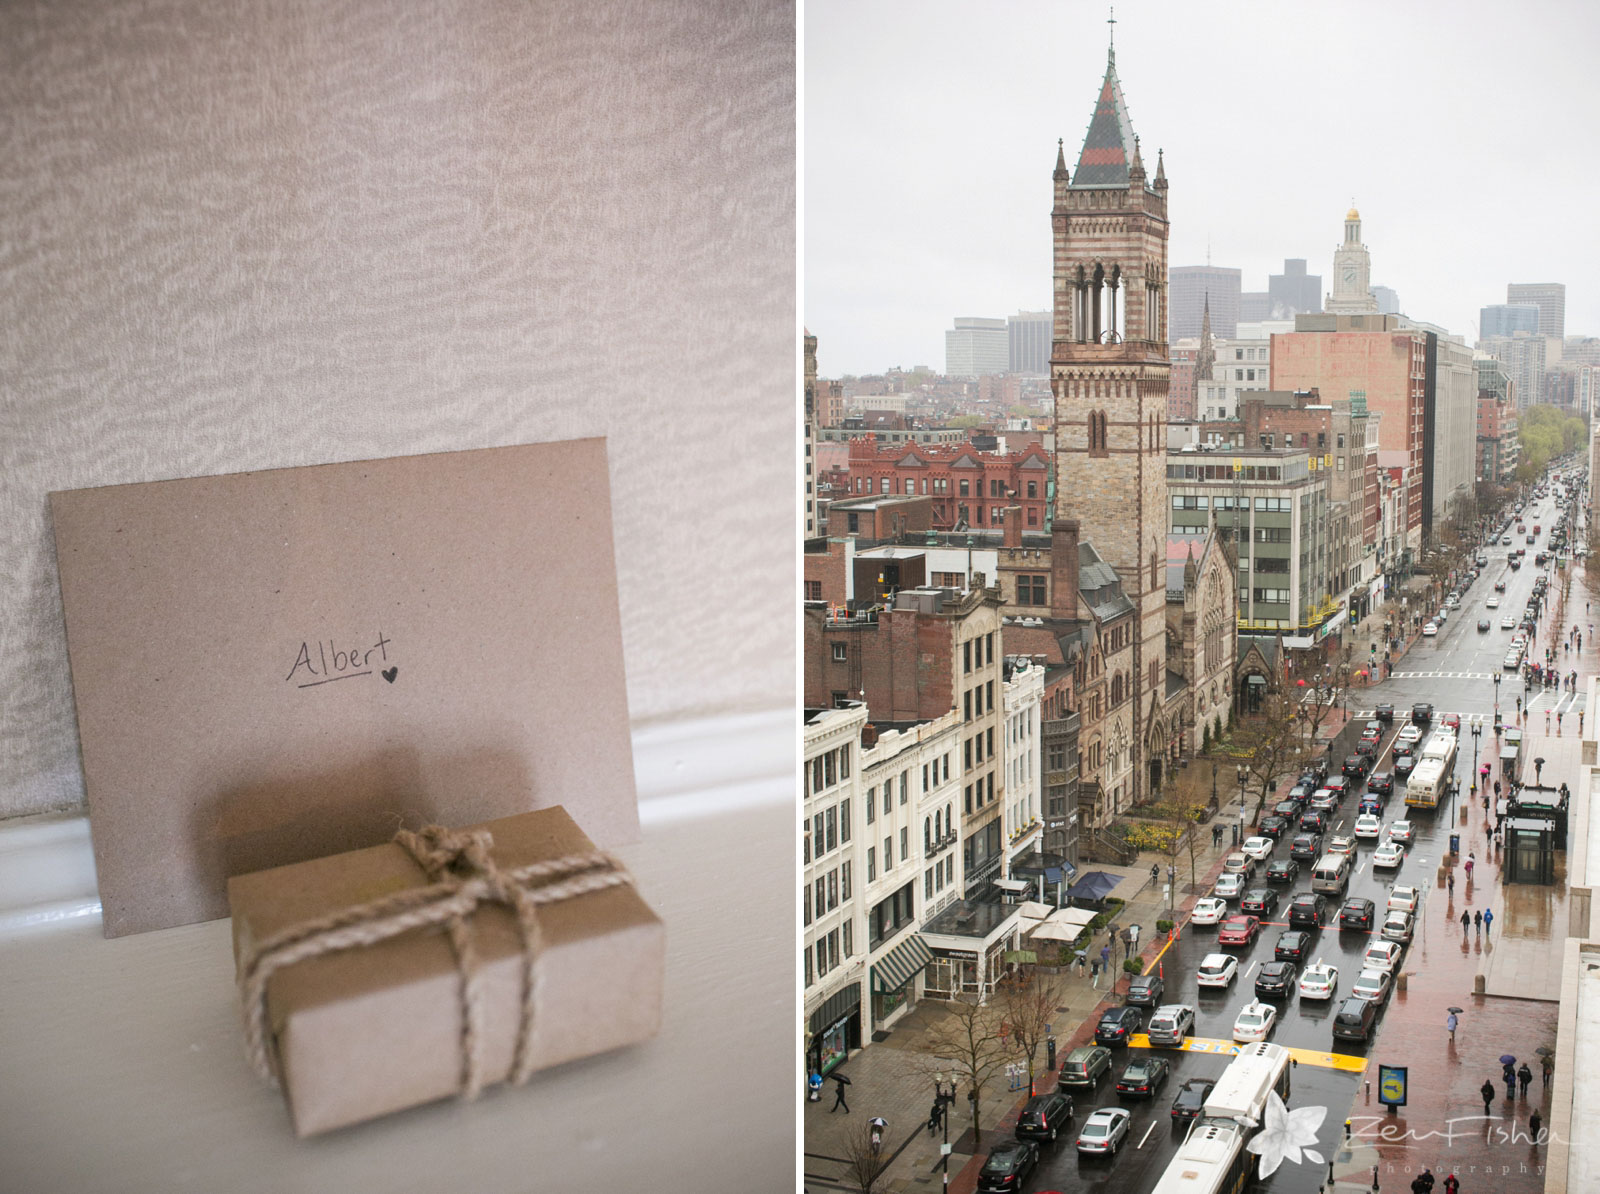 Bride's gift to the groom, and the view from the Lenox hotel looking down on rainy Boylston Street.